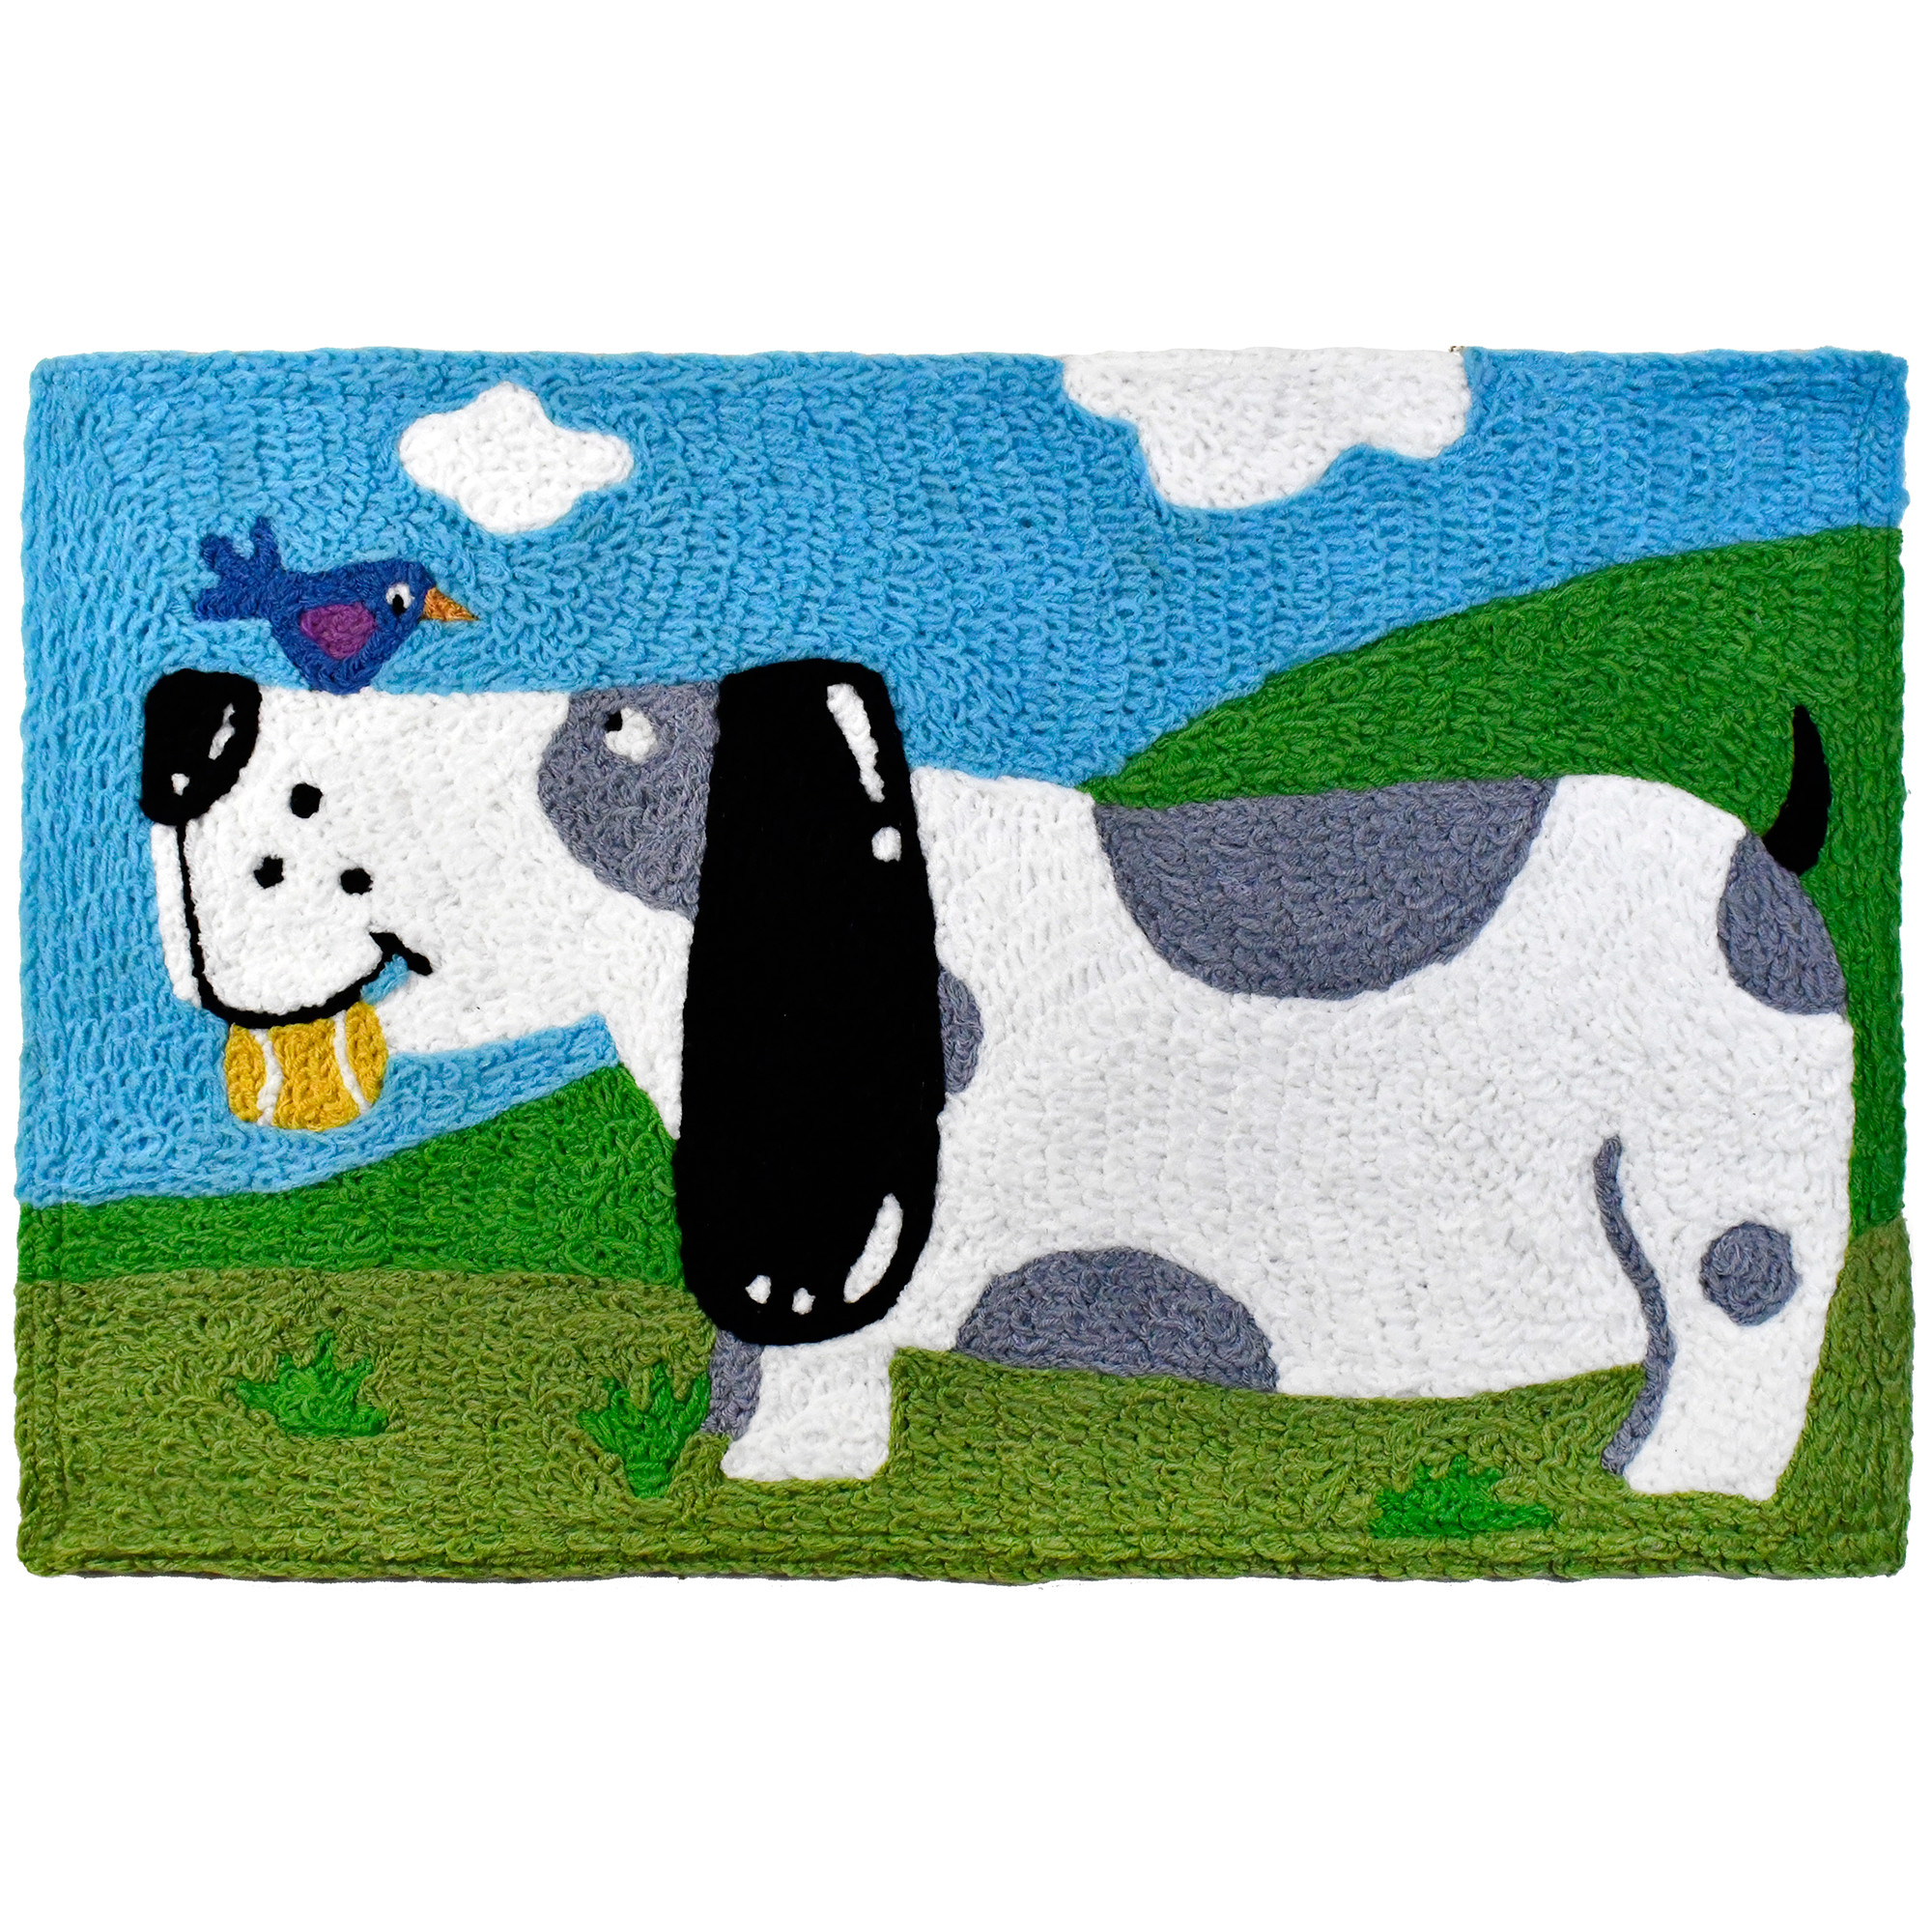 A playful pup enjoys the company of a chipper friend on this washable rug. The Jellybean® name ensures quality, hand-tufted crafting. This Jellybean® accent rug includes recycled materials.